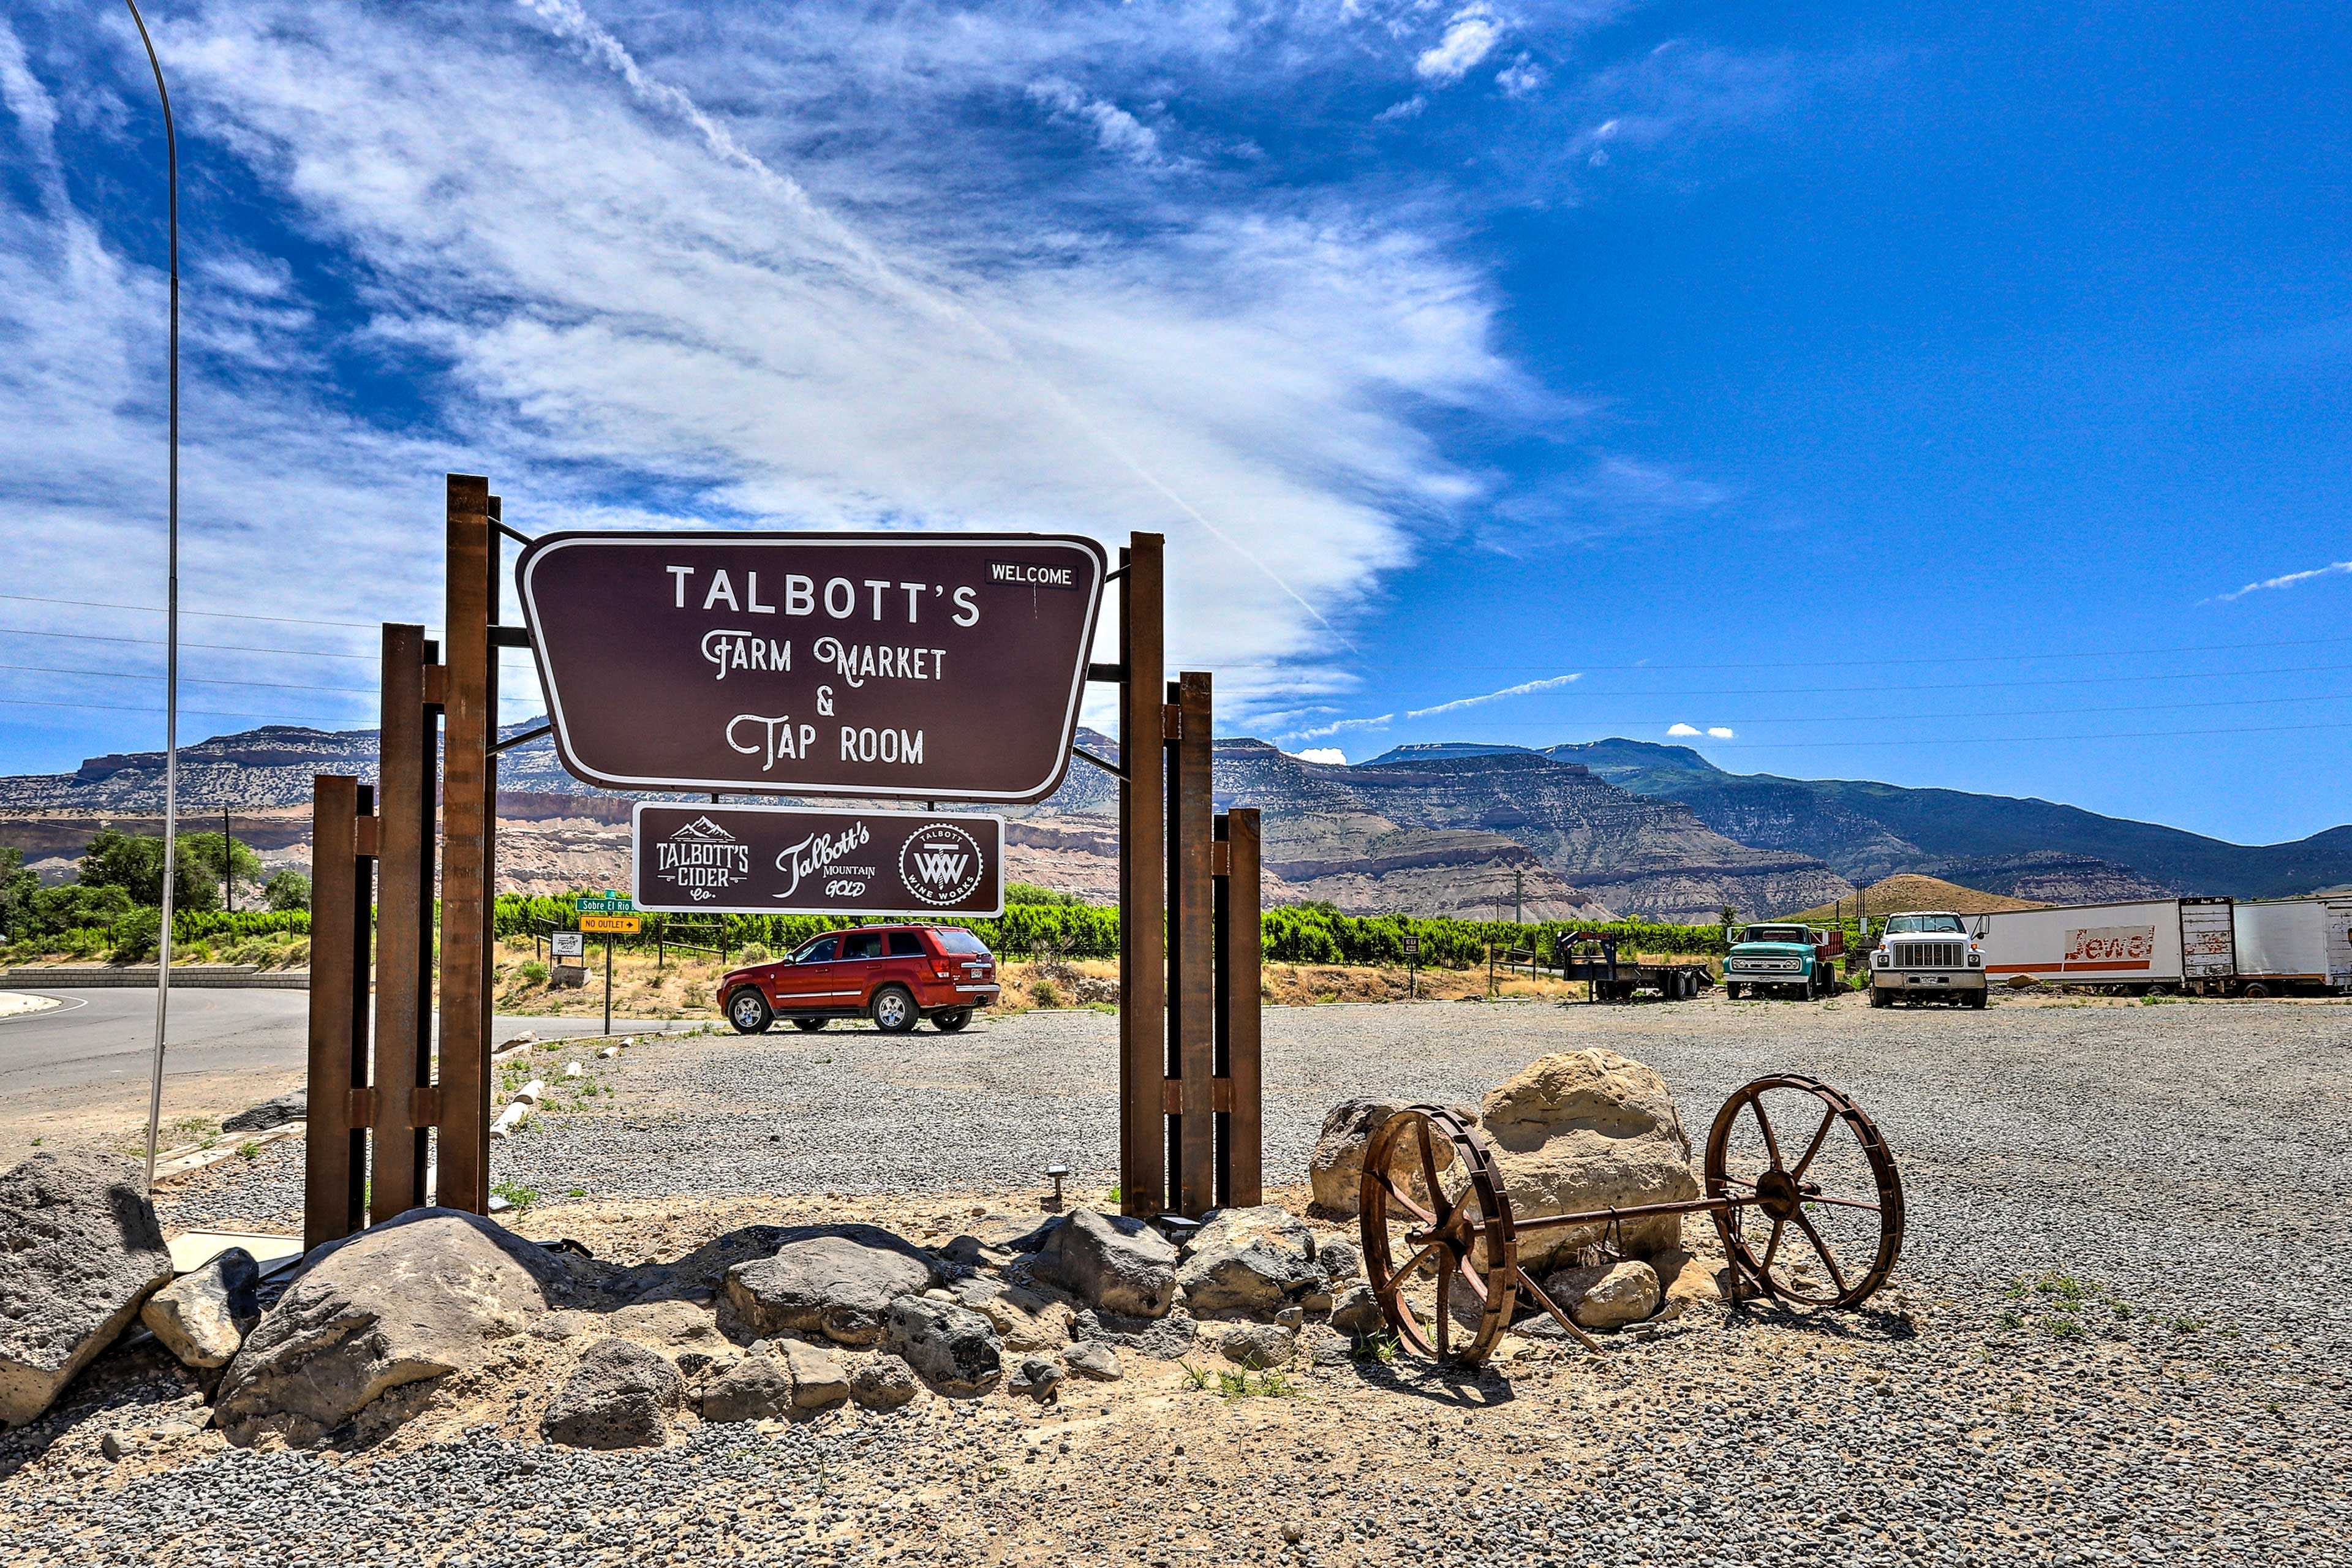 The cider lovers can trek to Talbott's nearby.